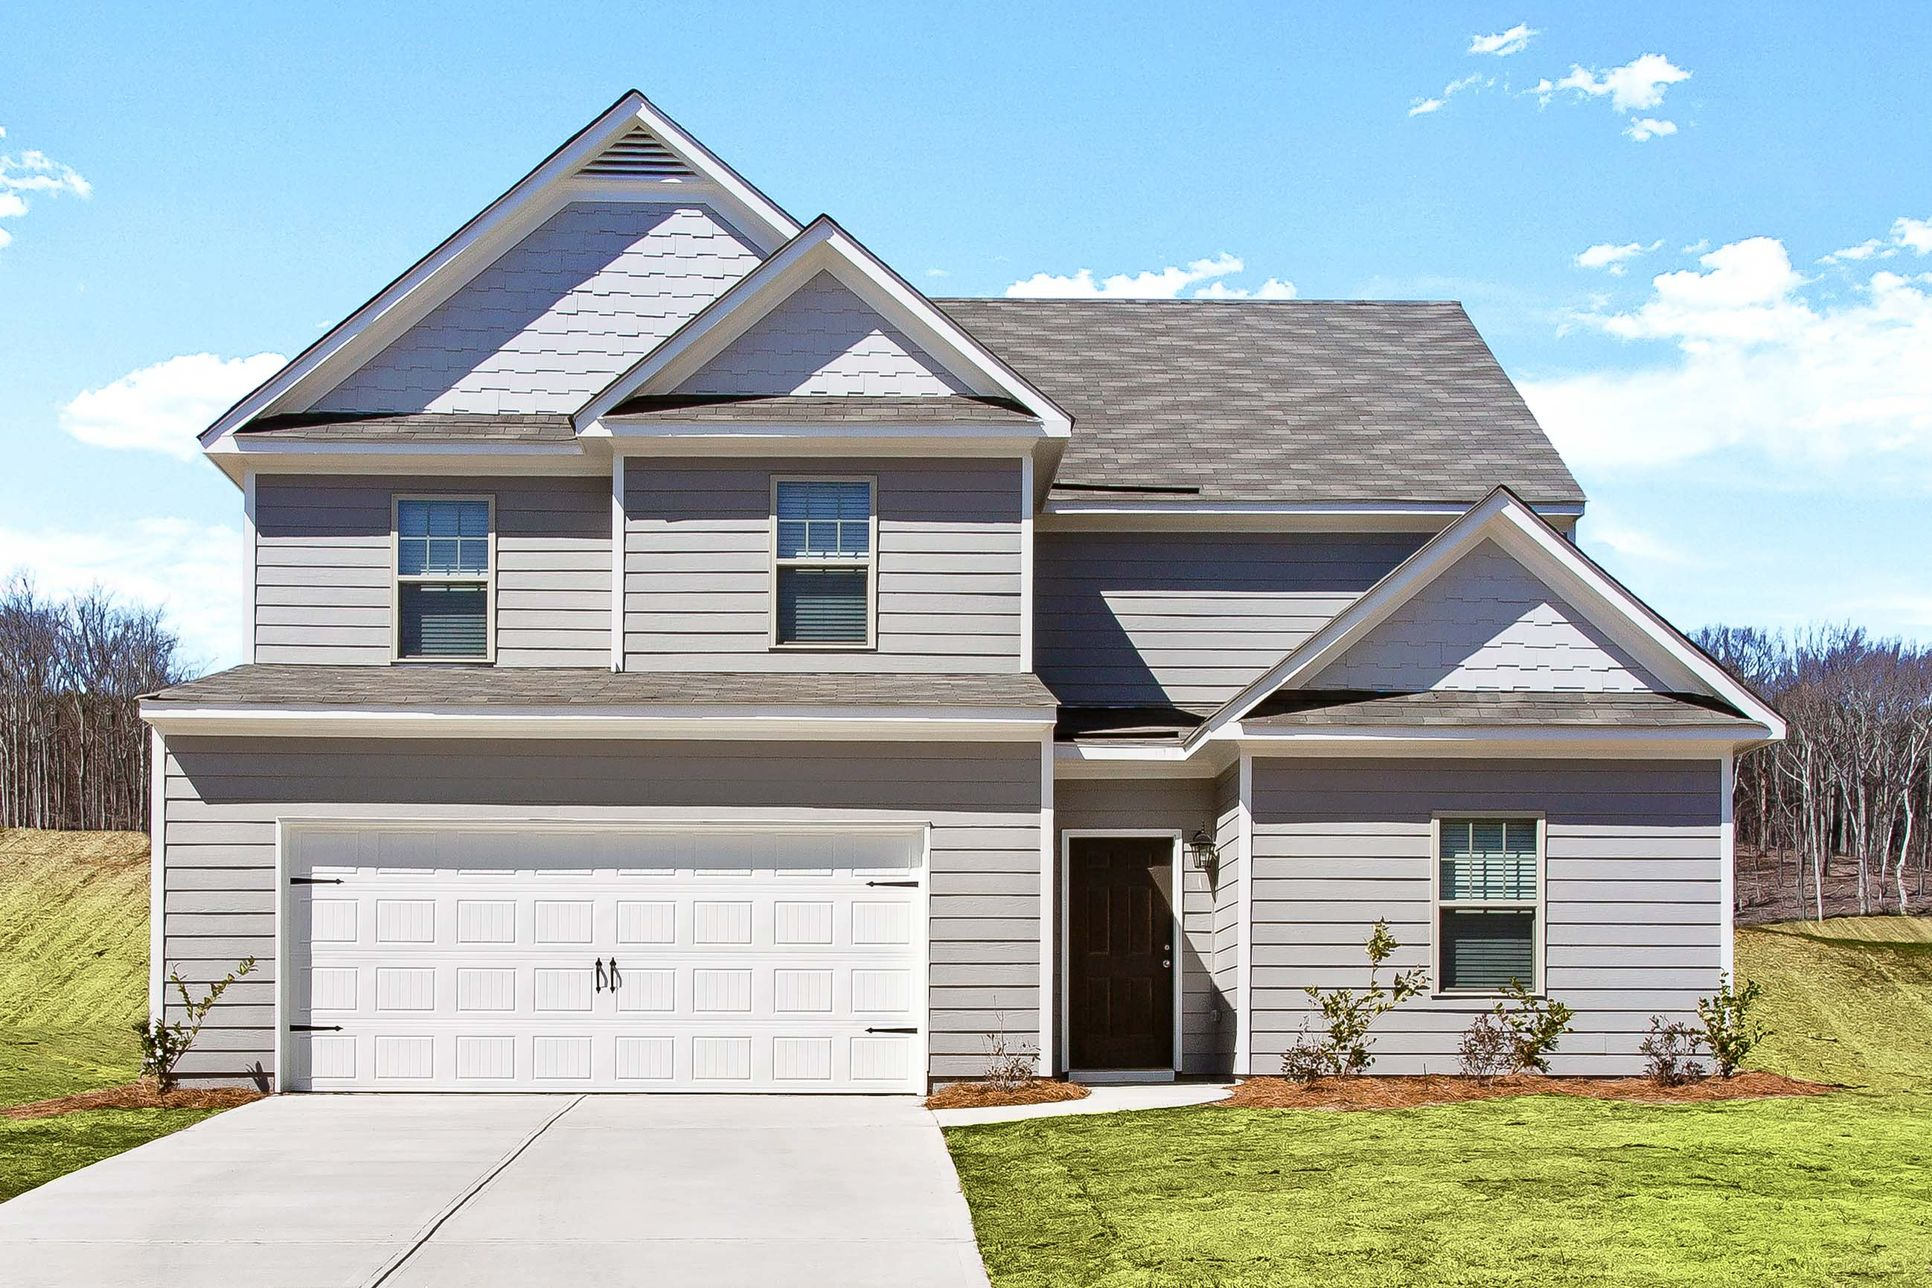 The Hartwell by LGI Homes:Two Story Home with Gorgeous Attention to Detail